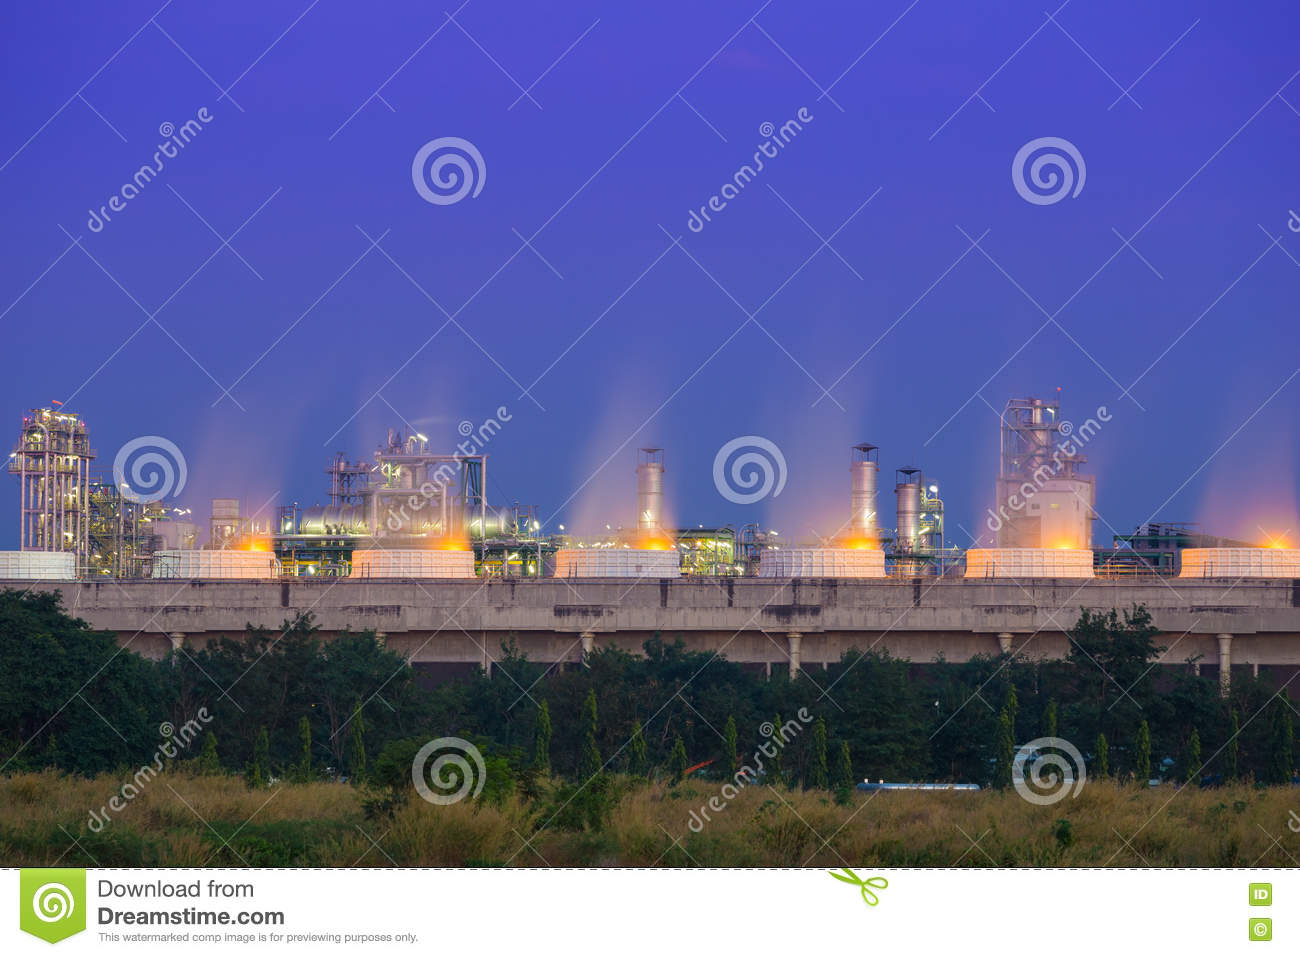 Cooling tower of oil refinery industrial plant at night, Thailand